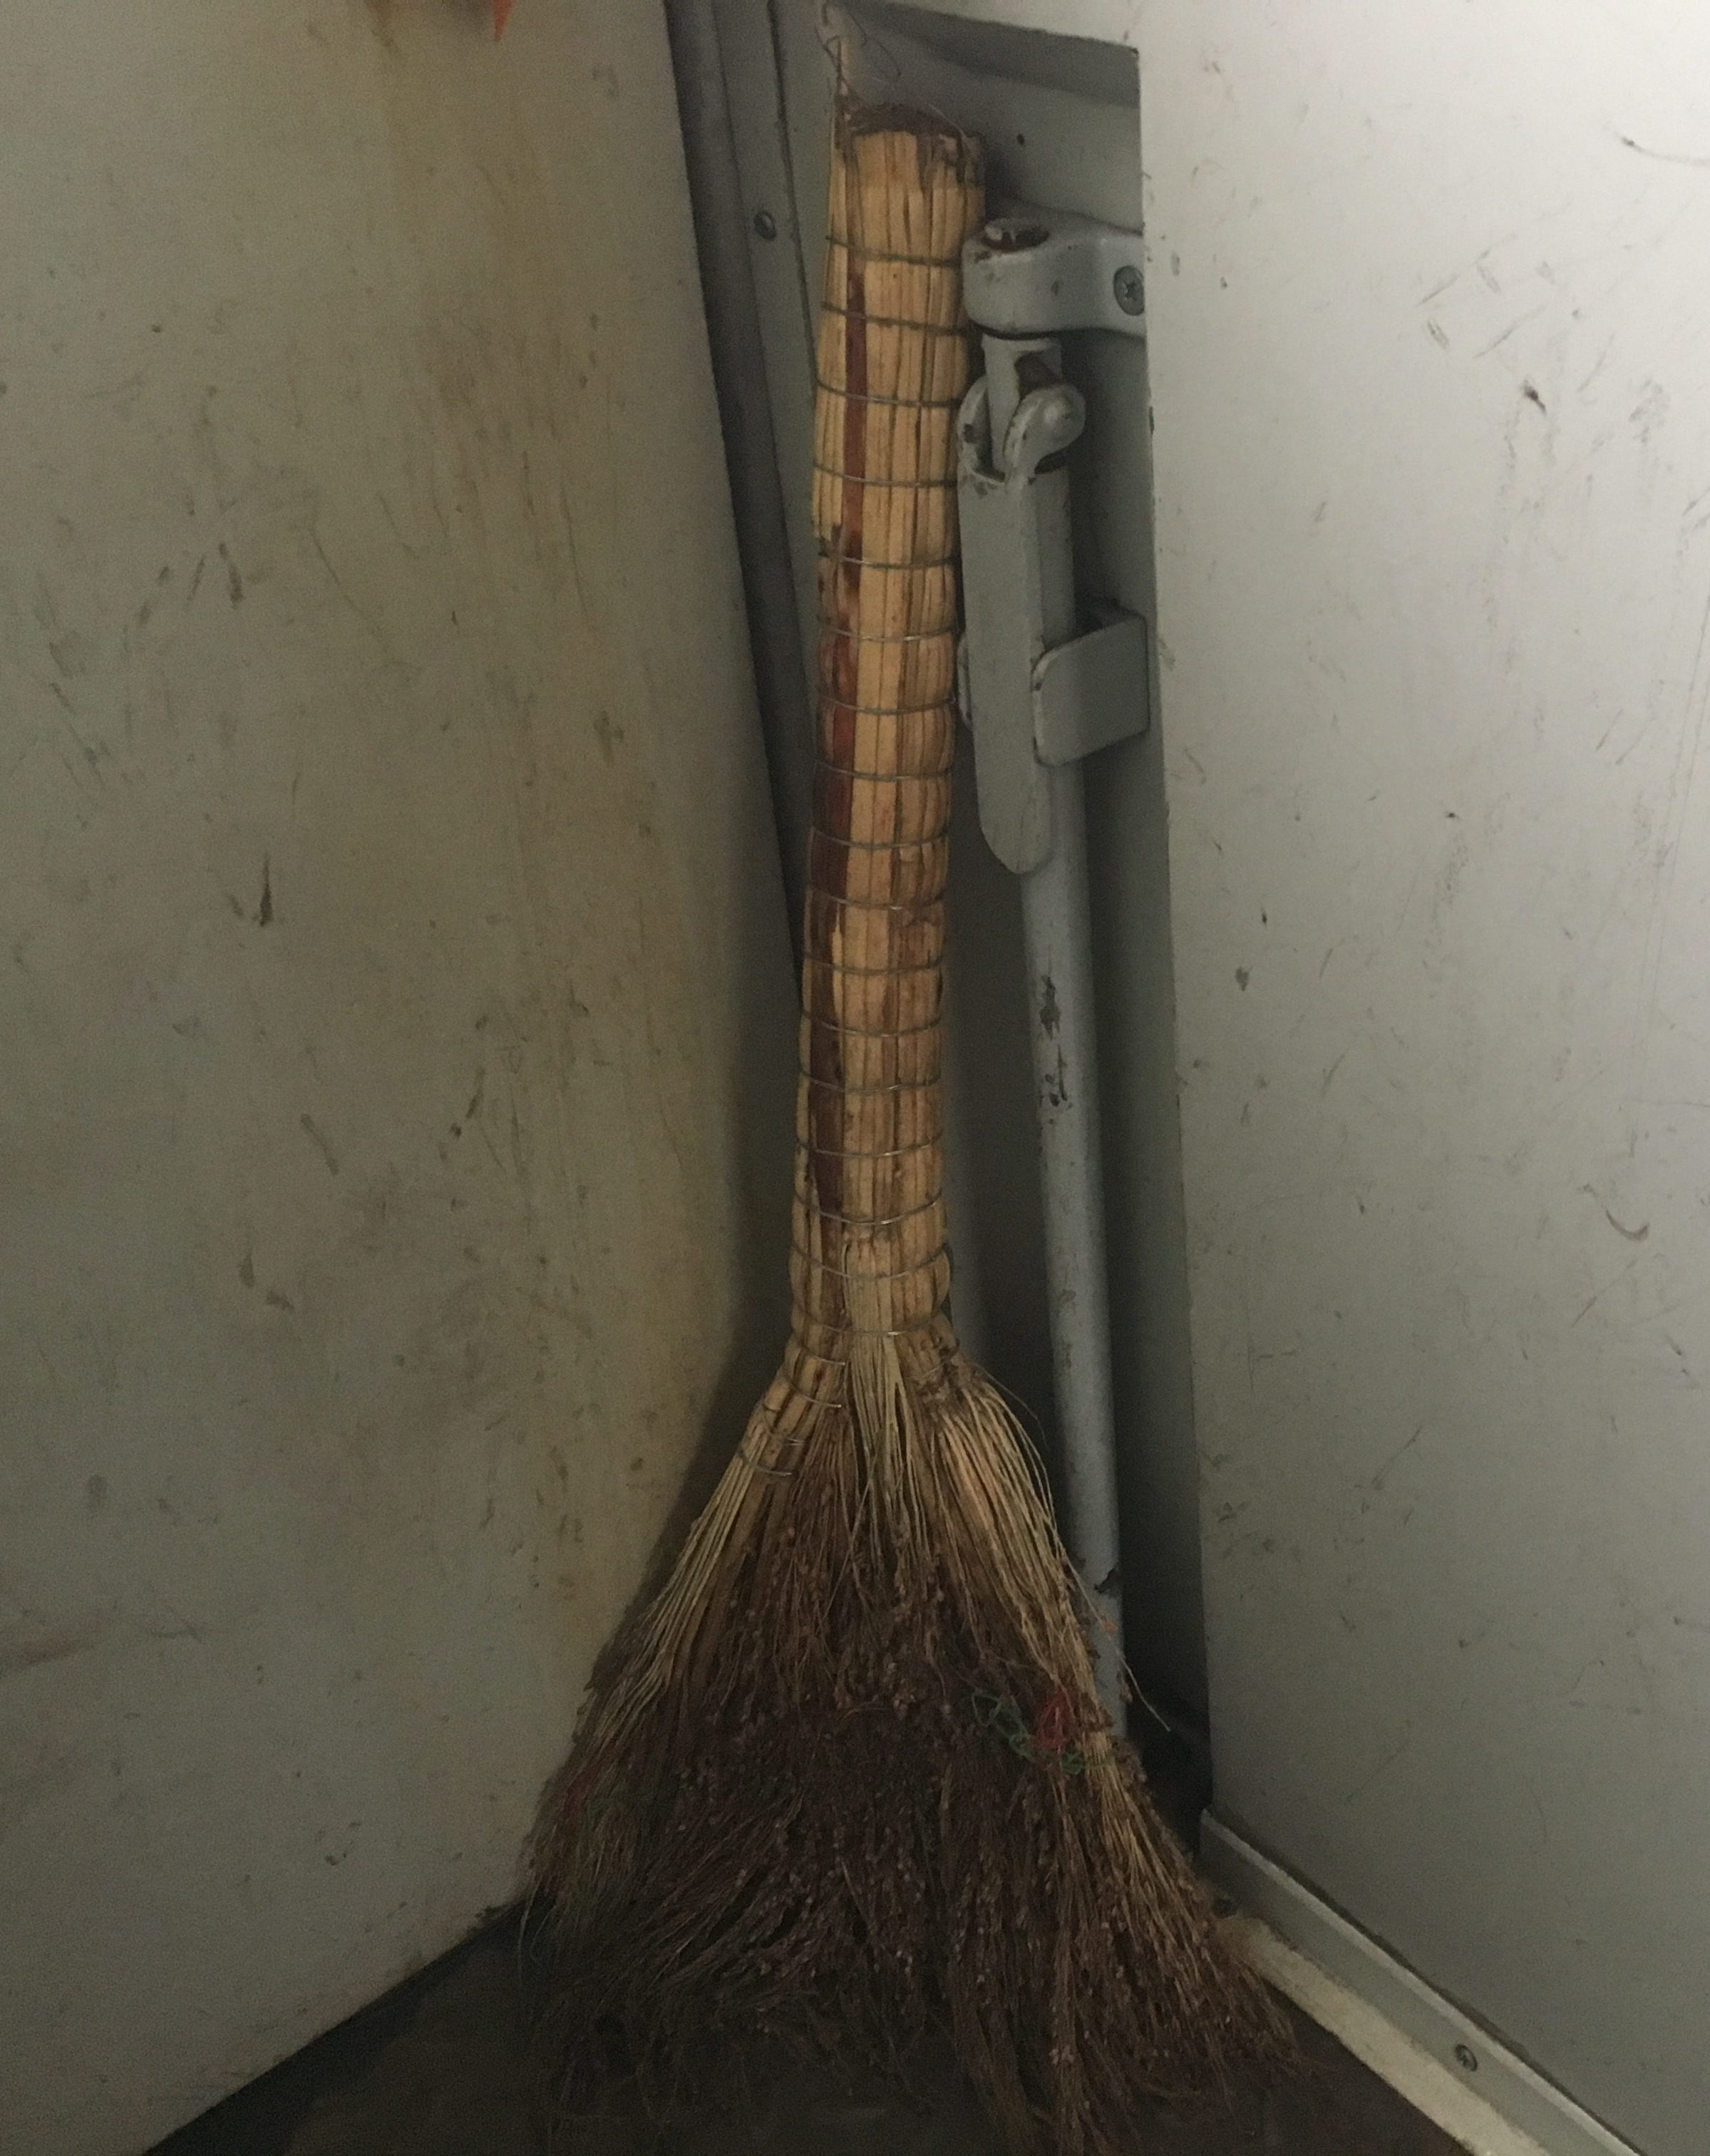 Wonder how long a broom lasts?